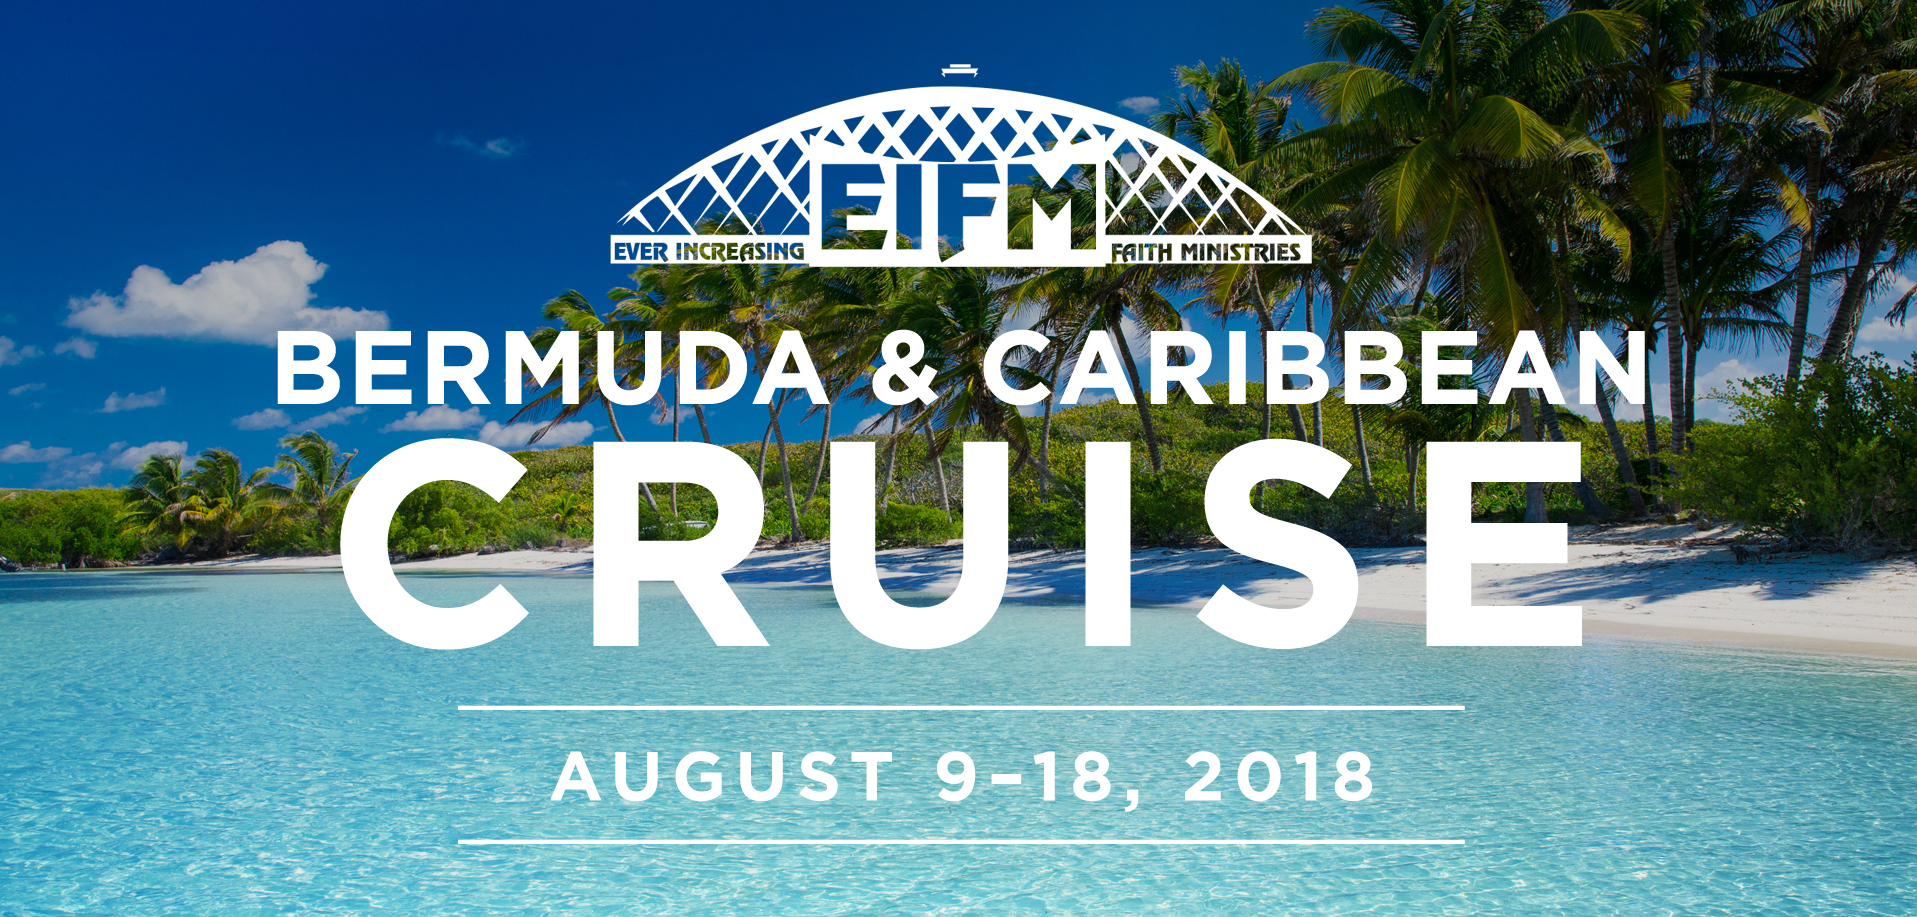 Take a Christian Cruise with Ever Increasing Faith Ministries - Bermuda & Caribbean Cruise - August 9-18 2018